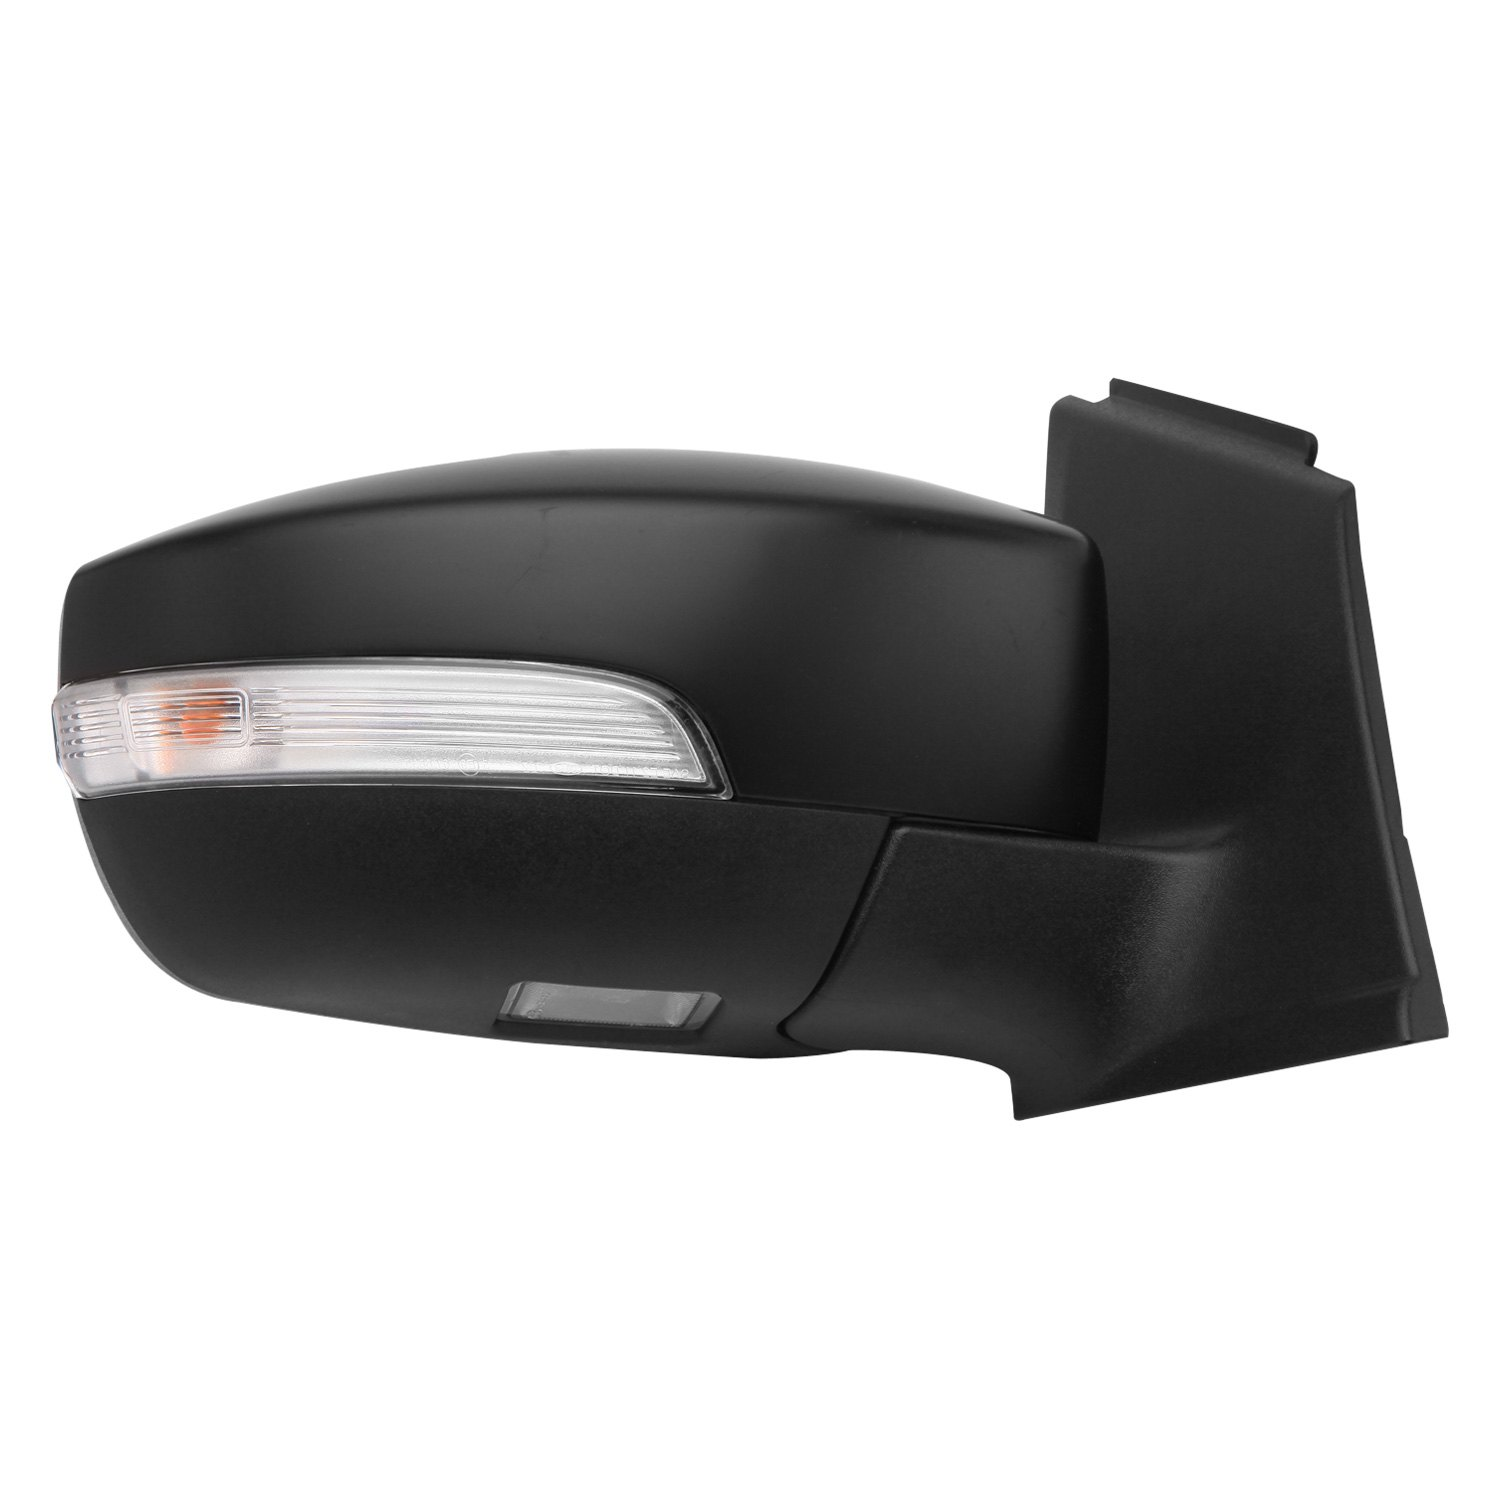 replace ford focus 2013 2014 power side view mirror. Black Bedroom Furniture Sets. Home Design Ideas